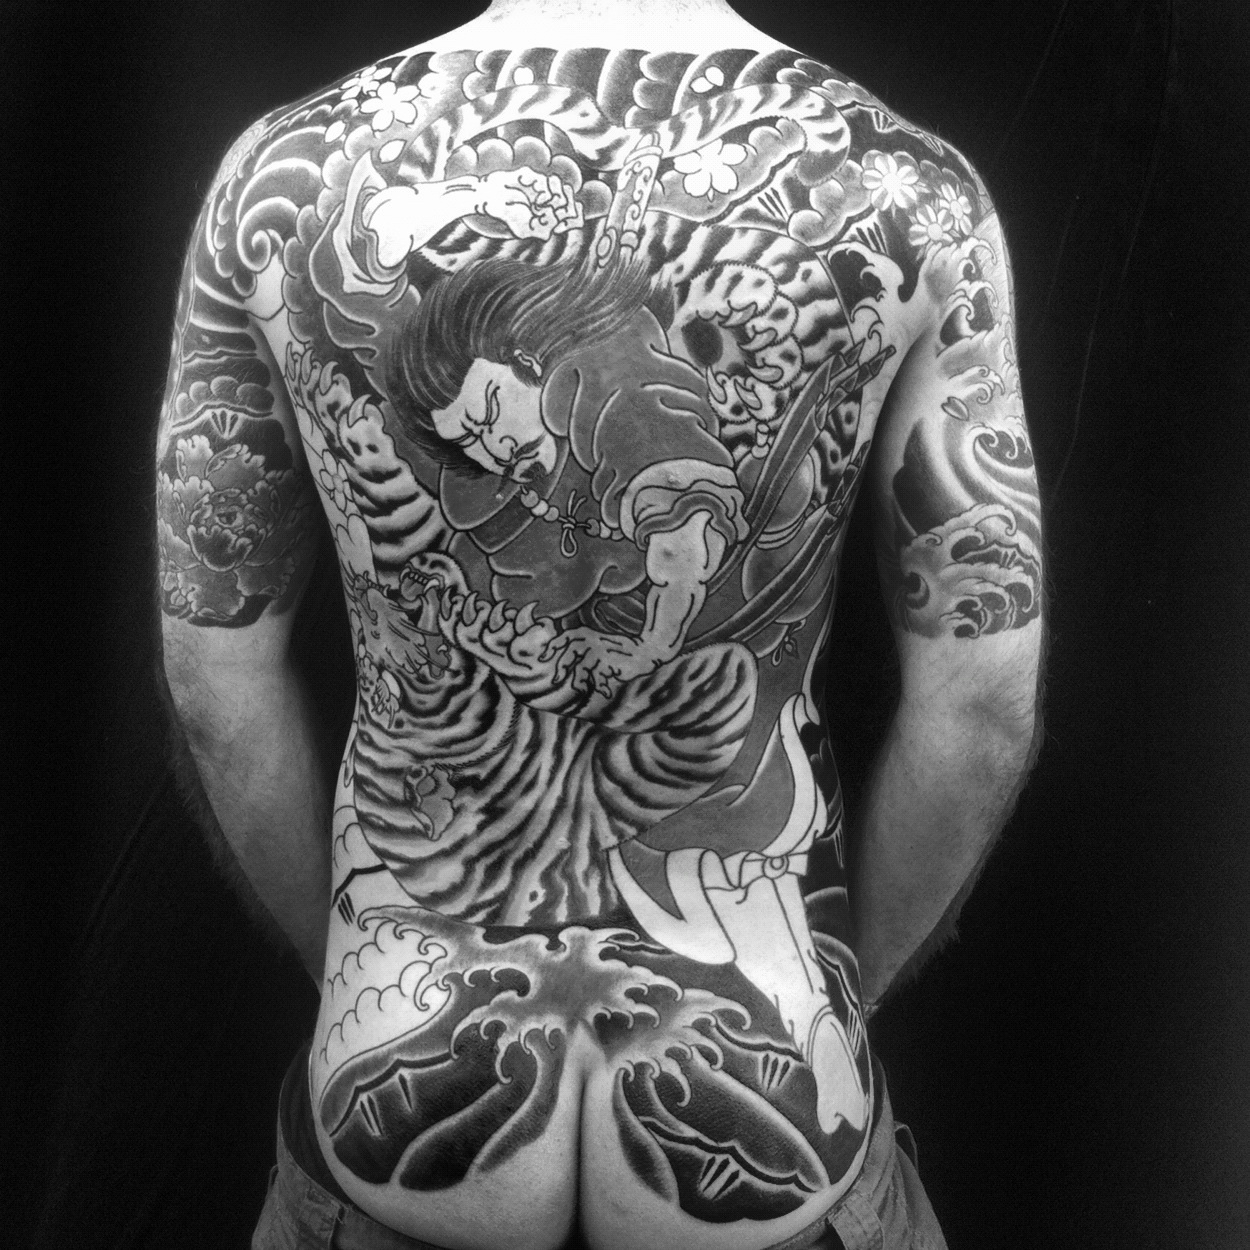 Backpiece tattoo Sydney Tattoo Rhys Gordon.JPG